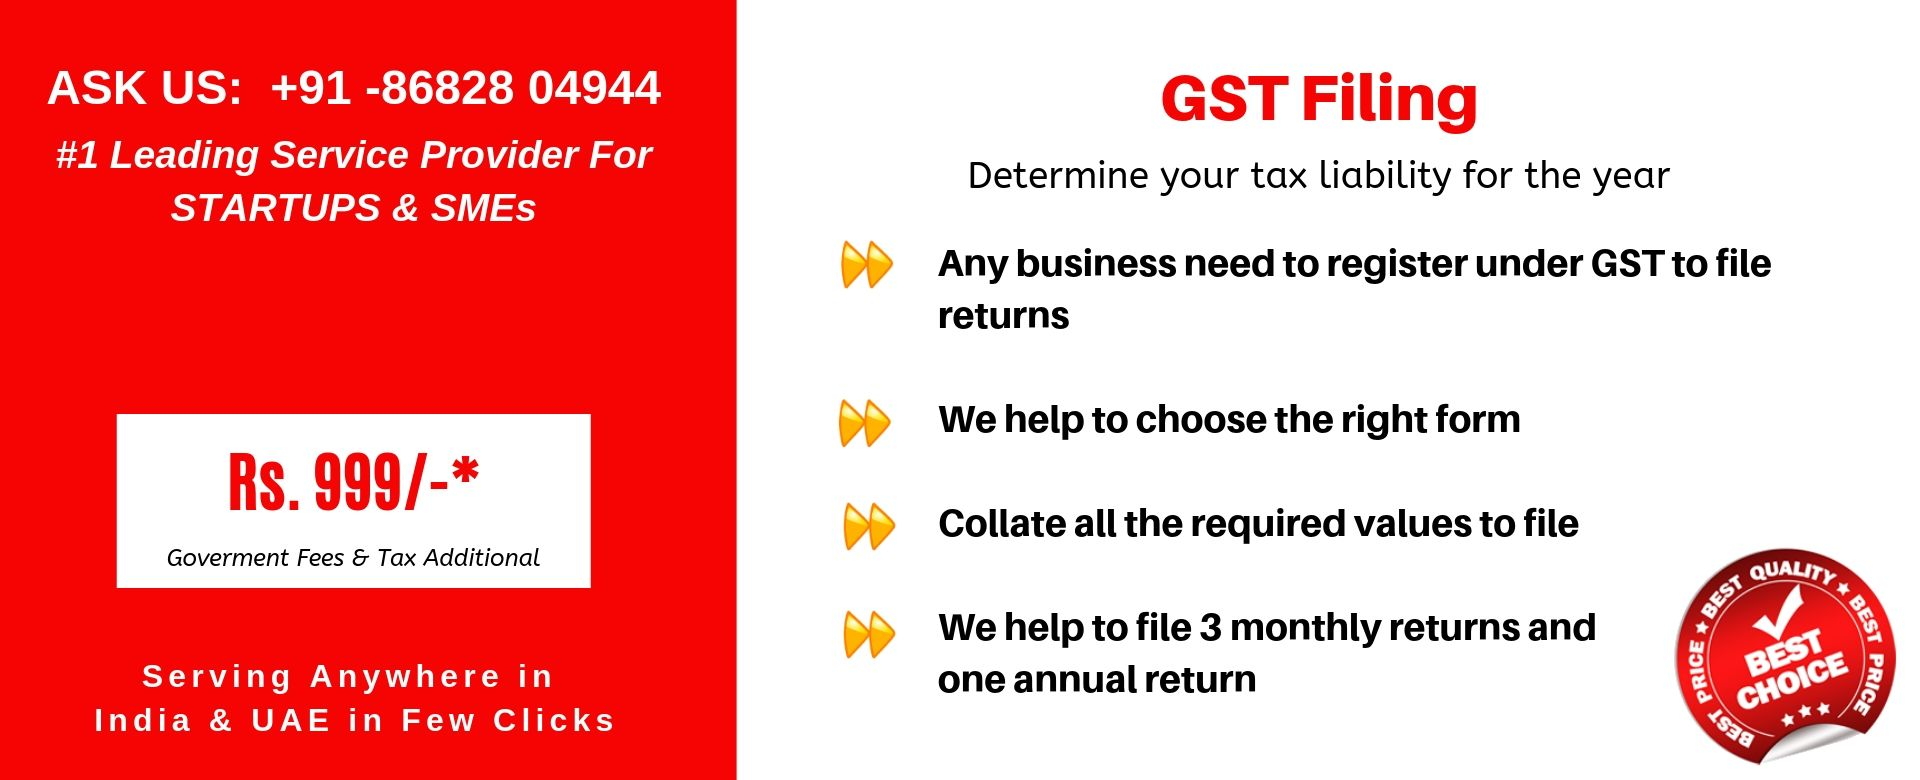 gst filing in india